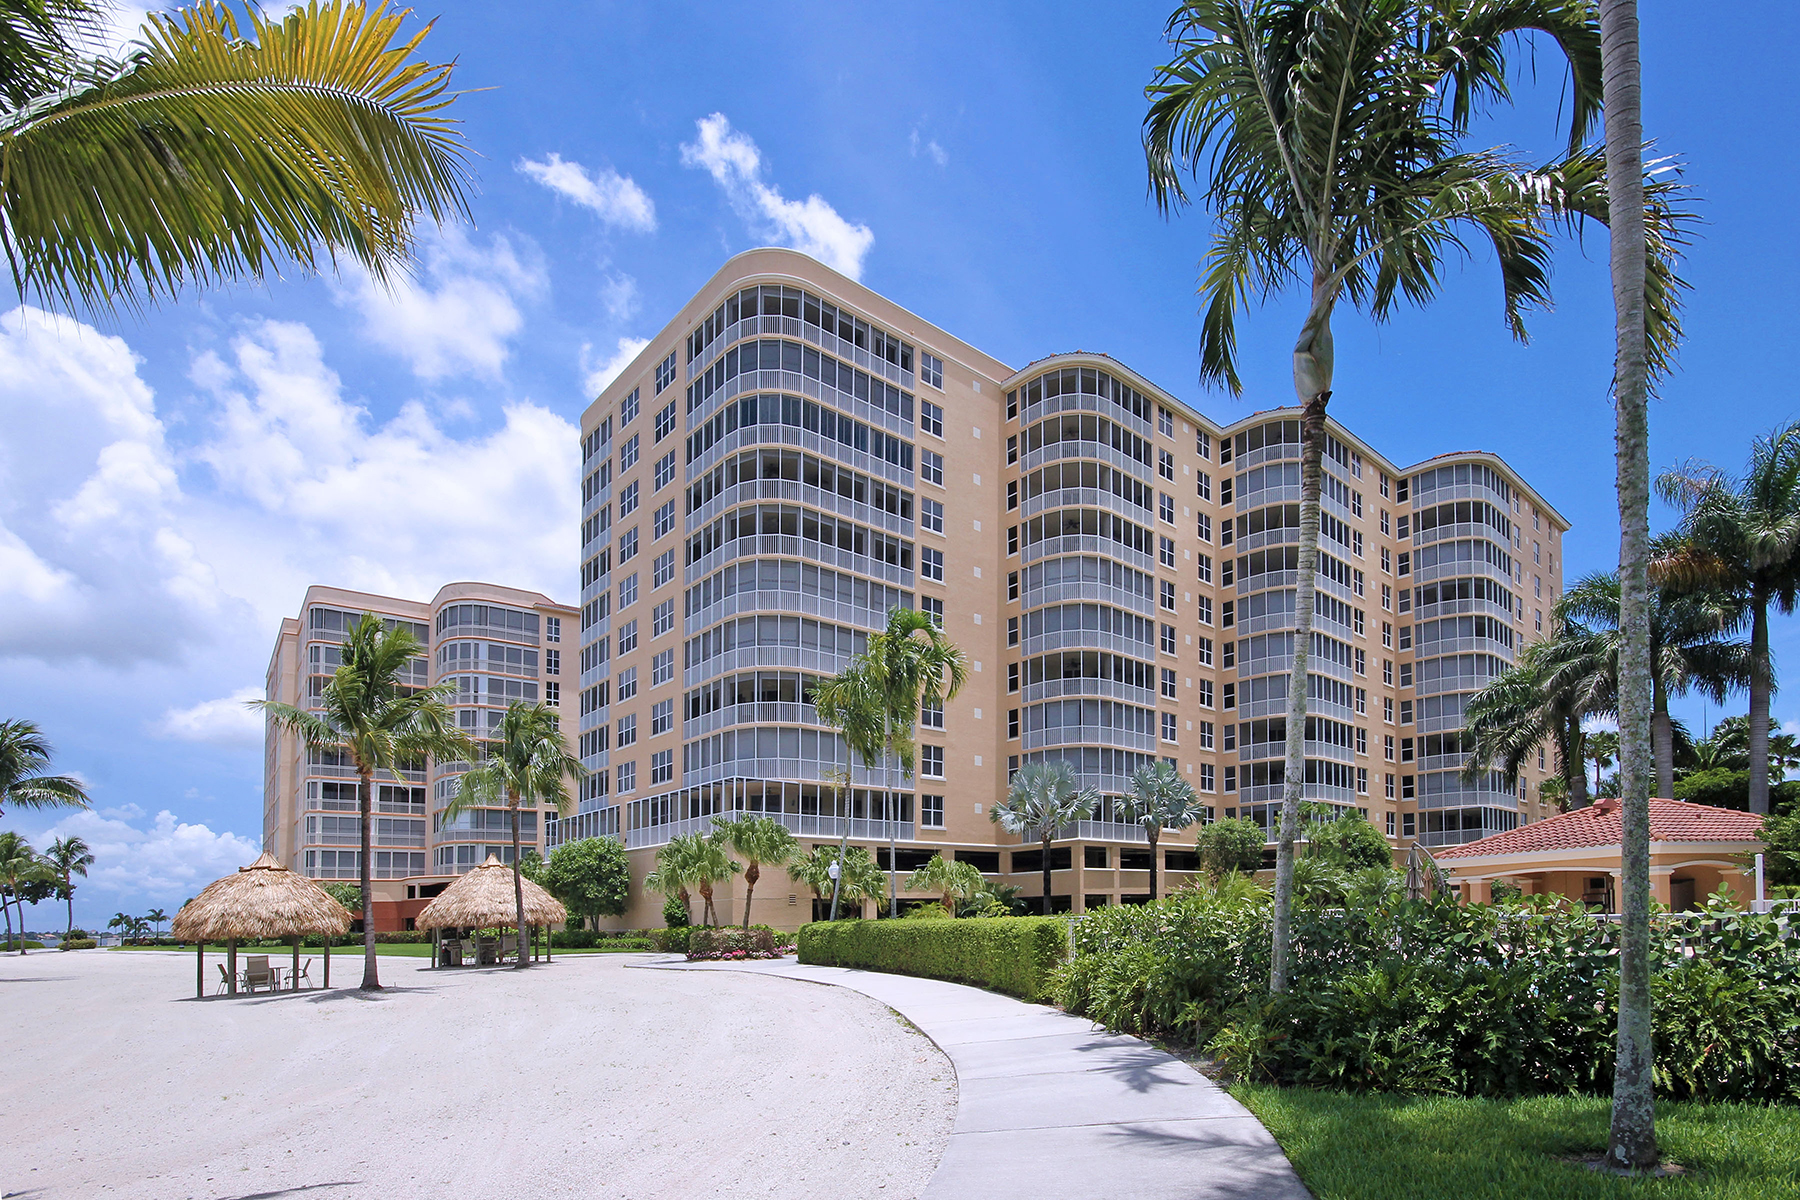 Condominium for Sale at 14250 Royal Harbour Ct , 1115, Fort Myers, FL 3390 14250 Royal Harbour Ct 1115, Fort Myers, Florida 33908 United States